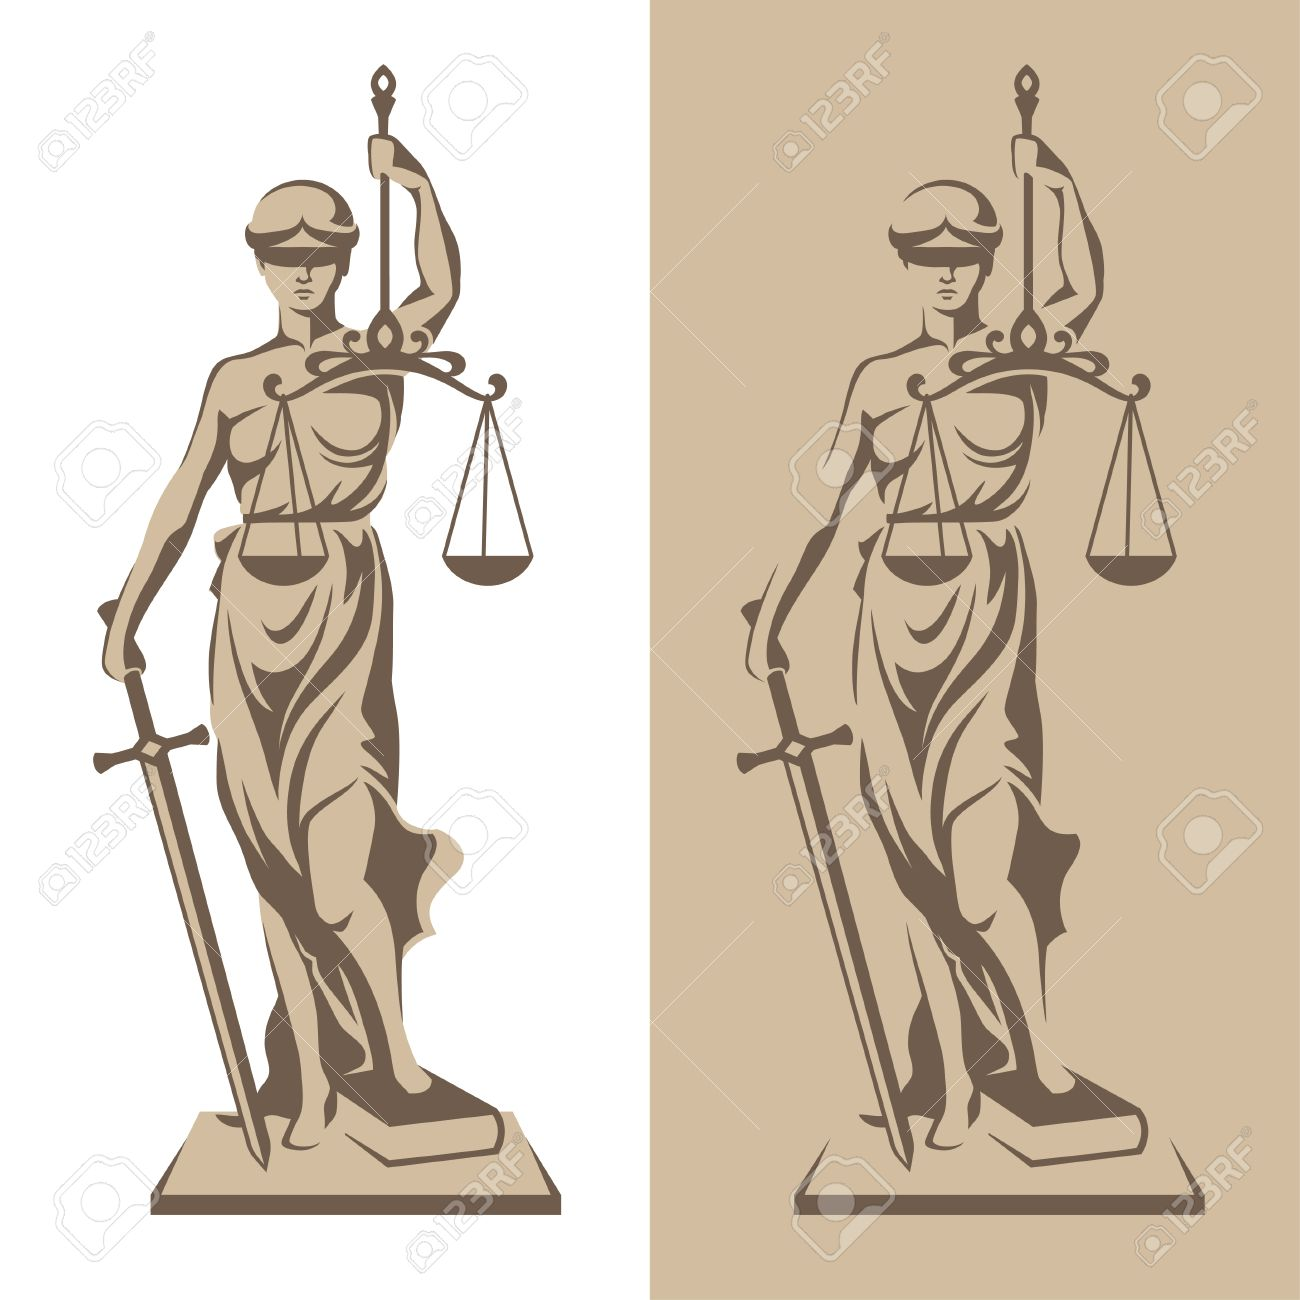 Vector illustration of Themis statue holding scales balance and sword isolated on white background and silhouette on colored background. Symbol of justice, law and order - 52701479